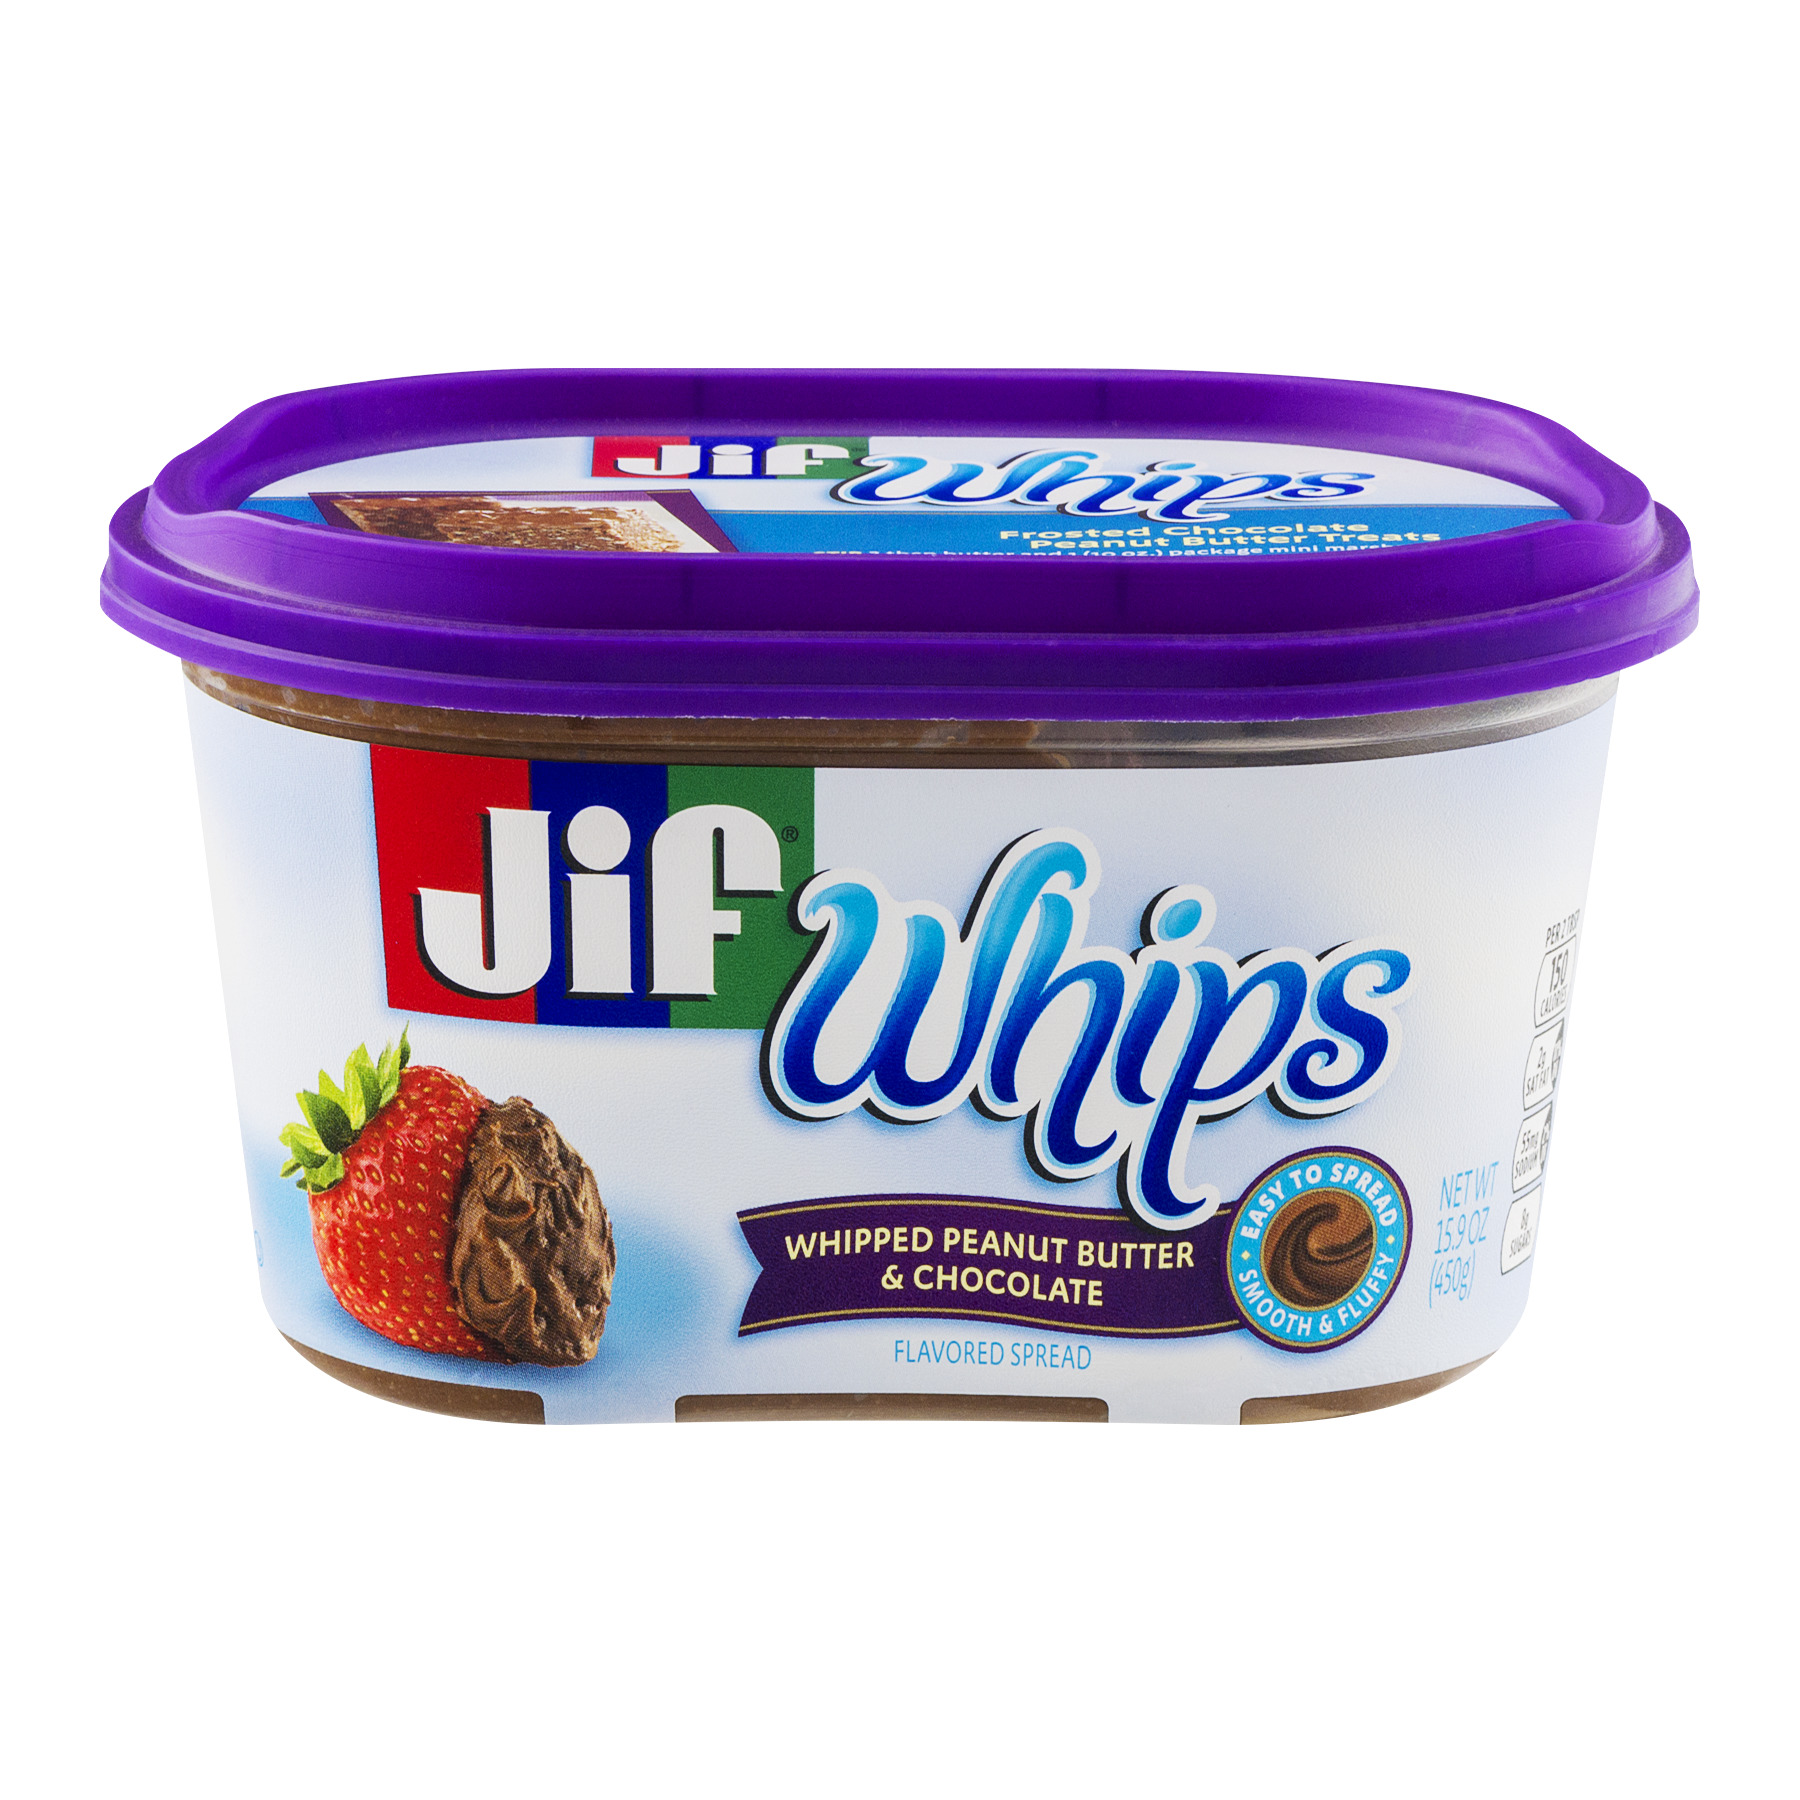 Jif Whips Whipped Peanut Butter & Chocolate, 15.9 OZ